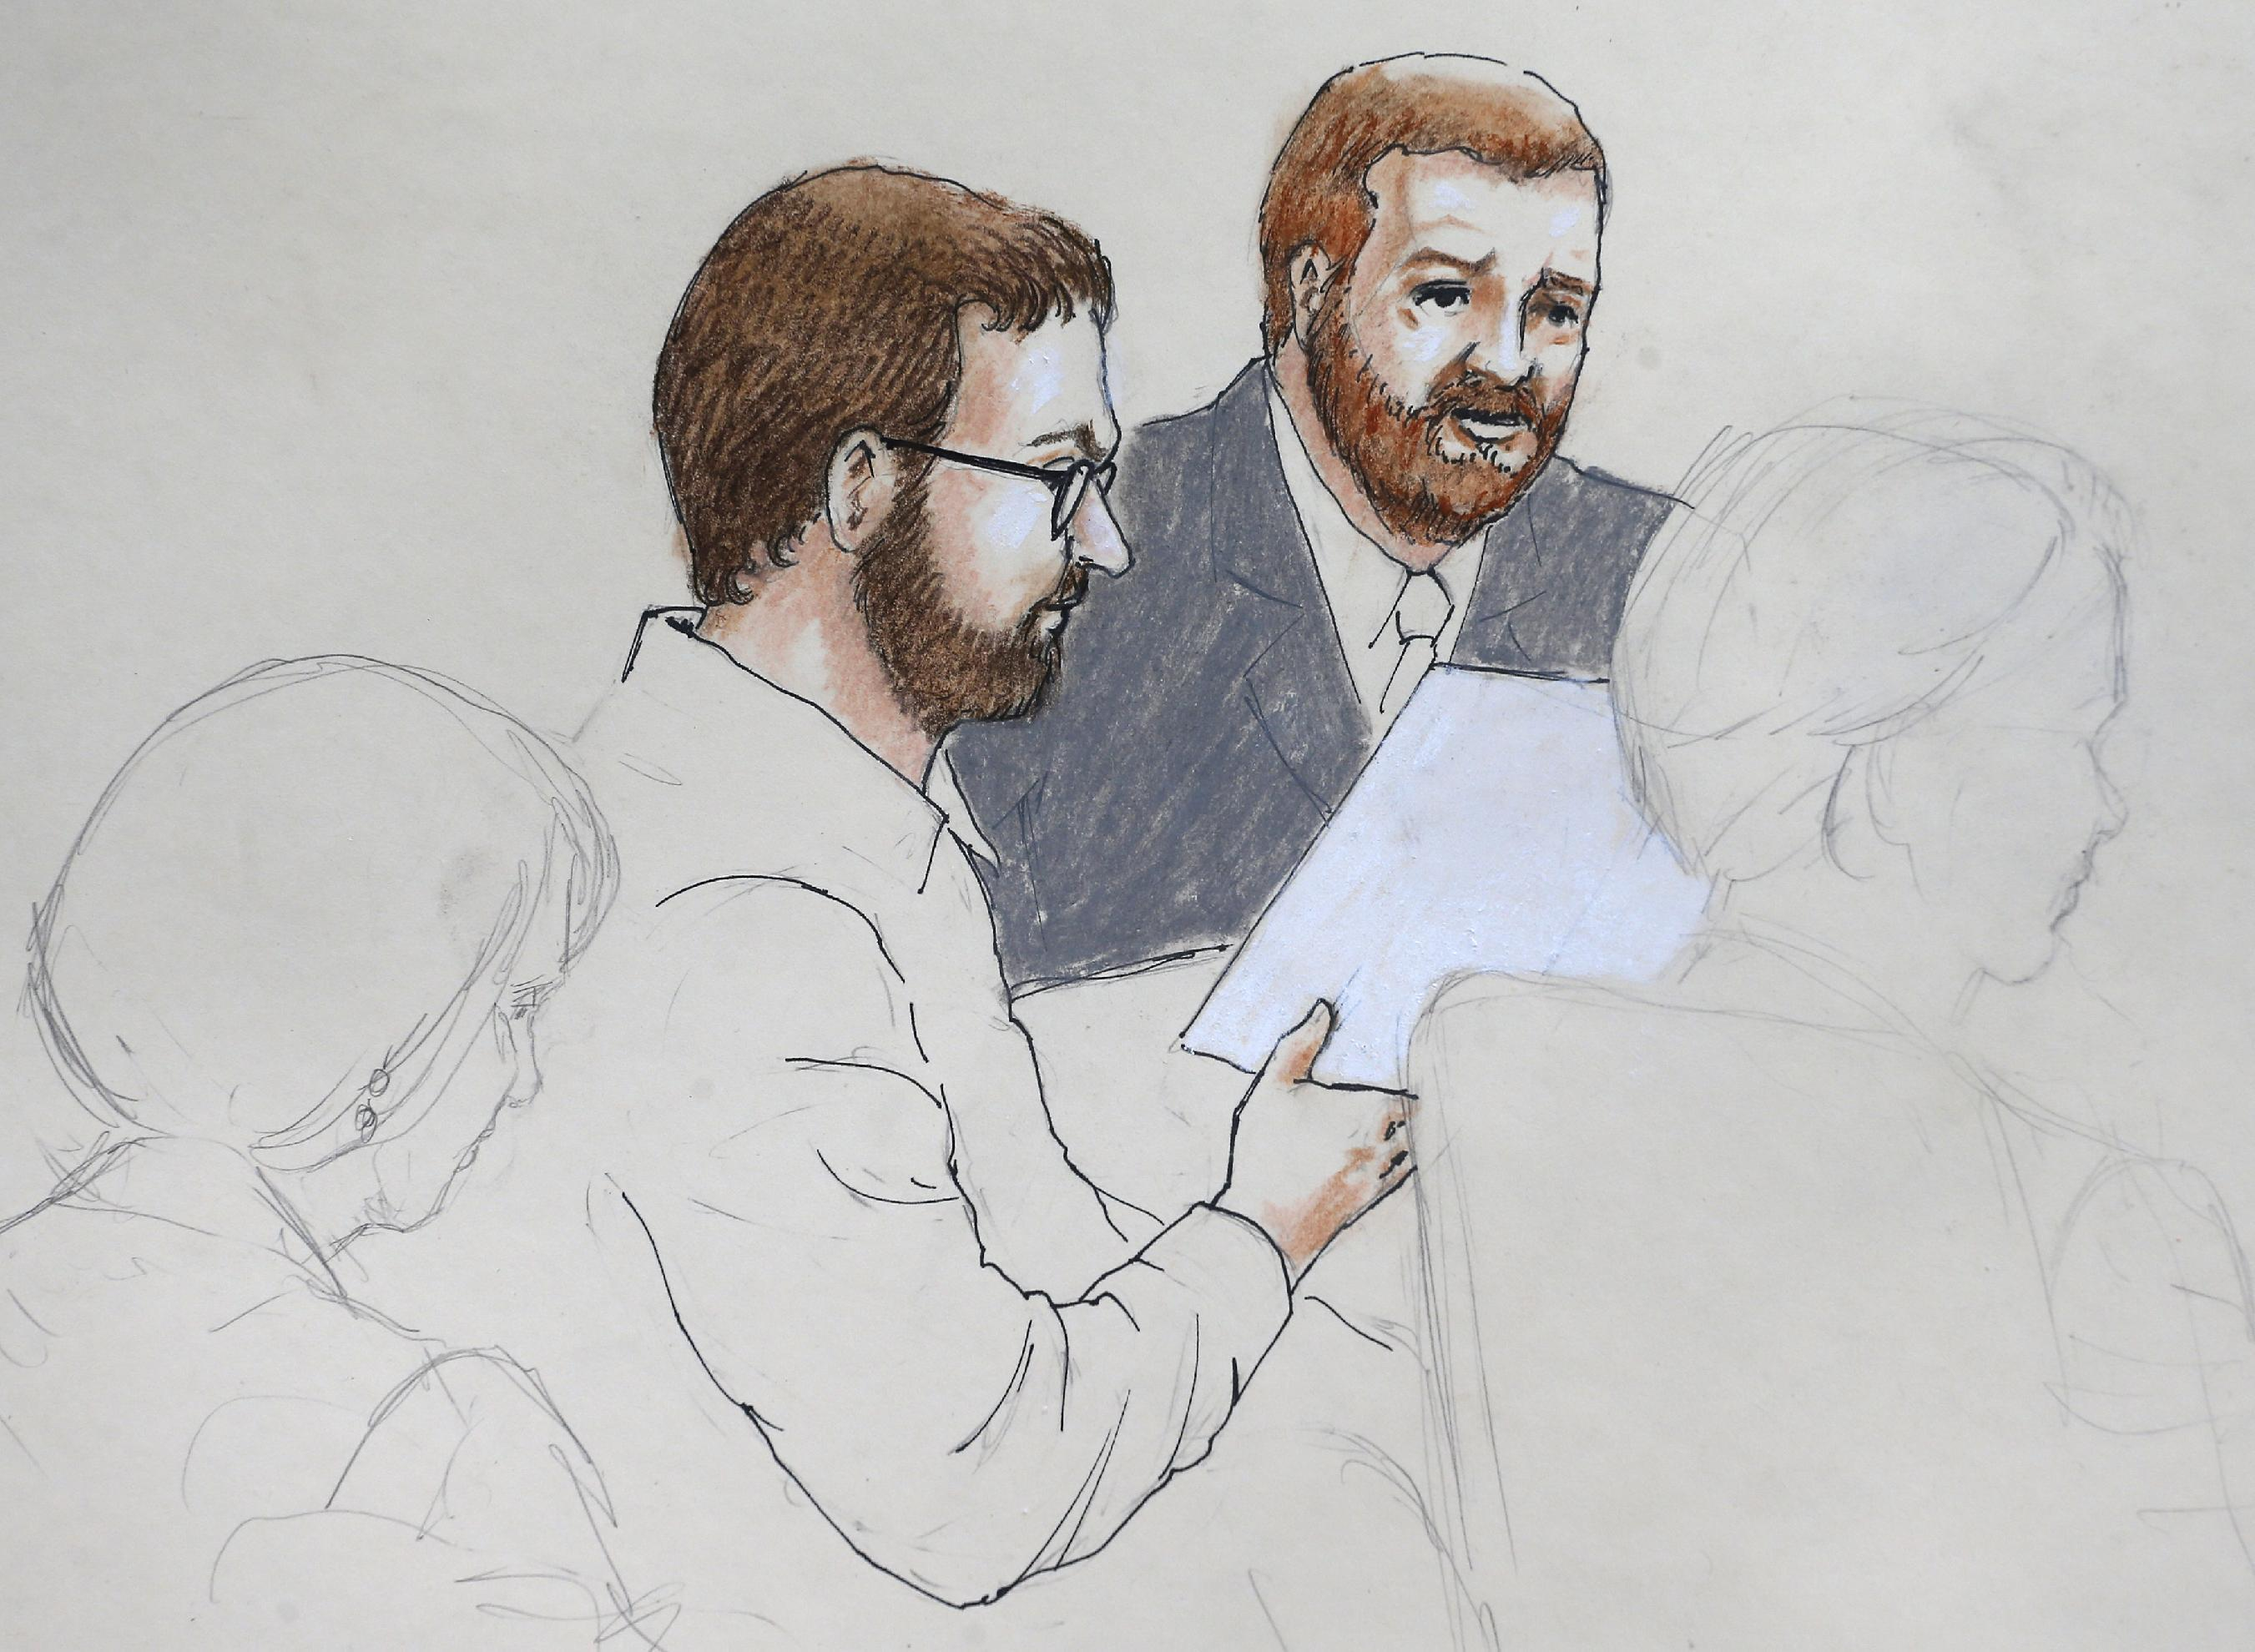 James Holmes – Colorado theater shooting